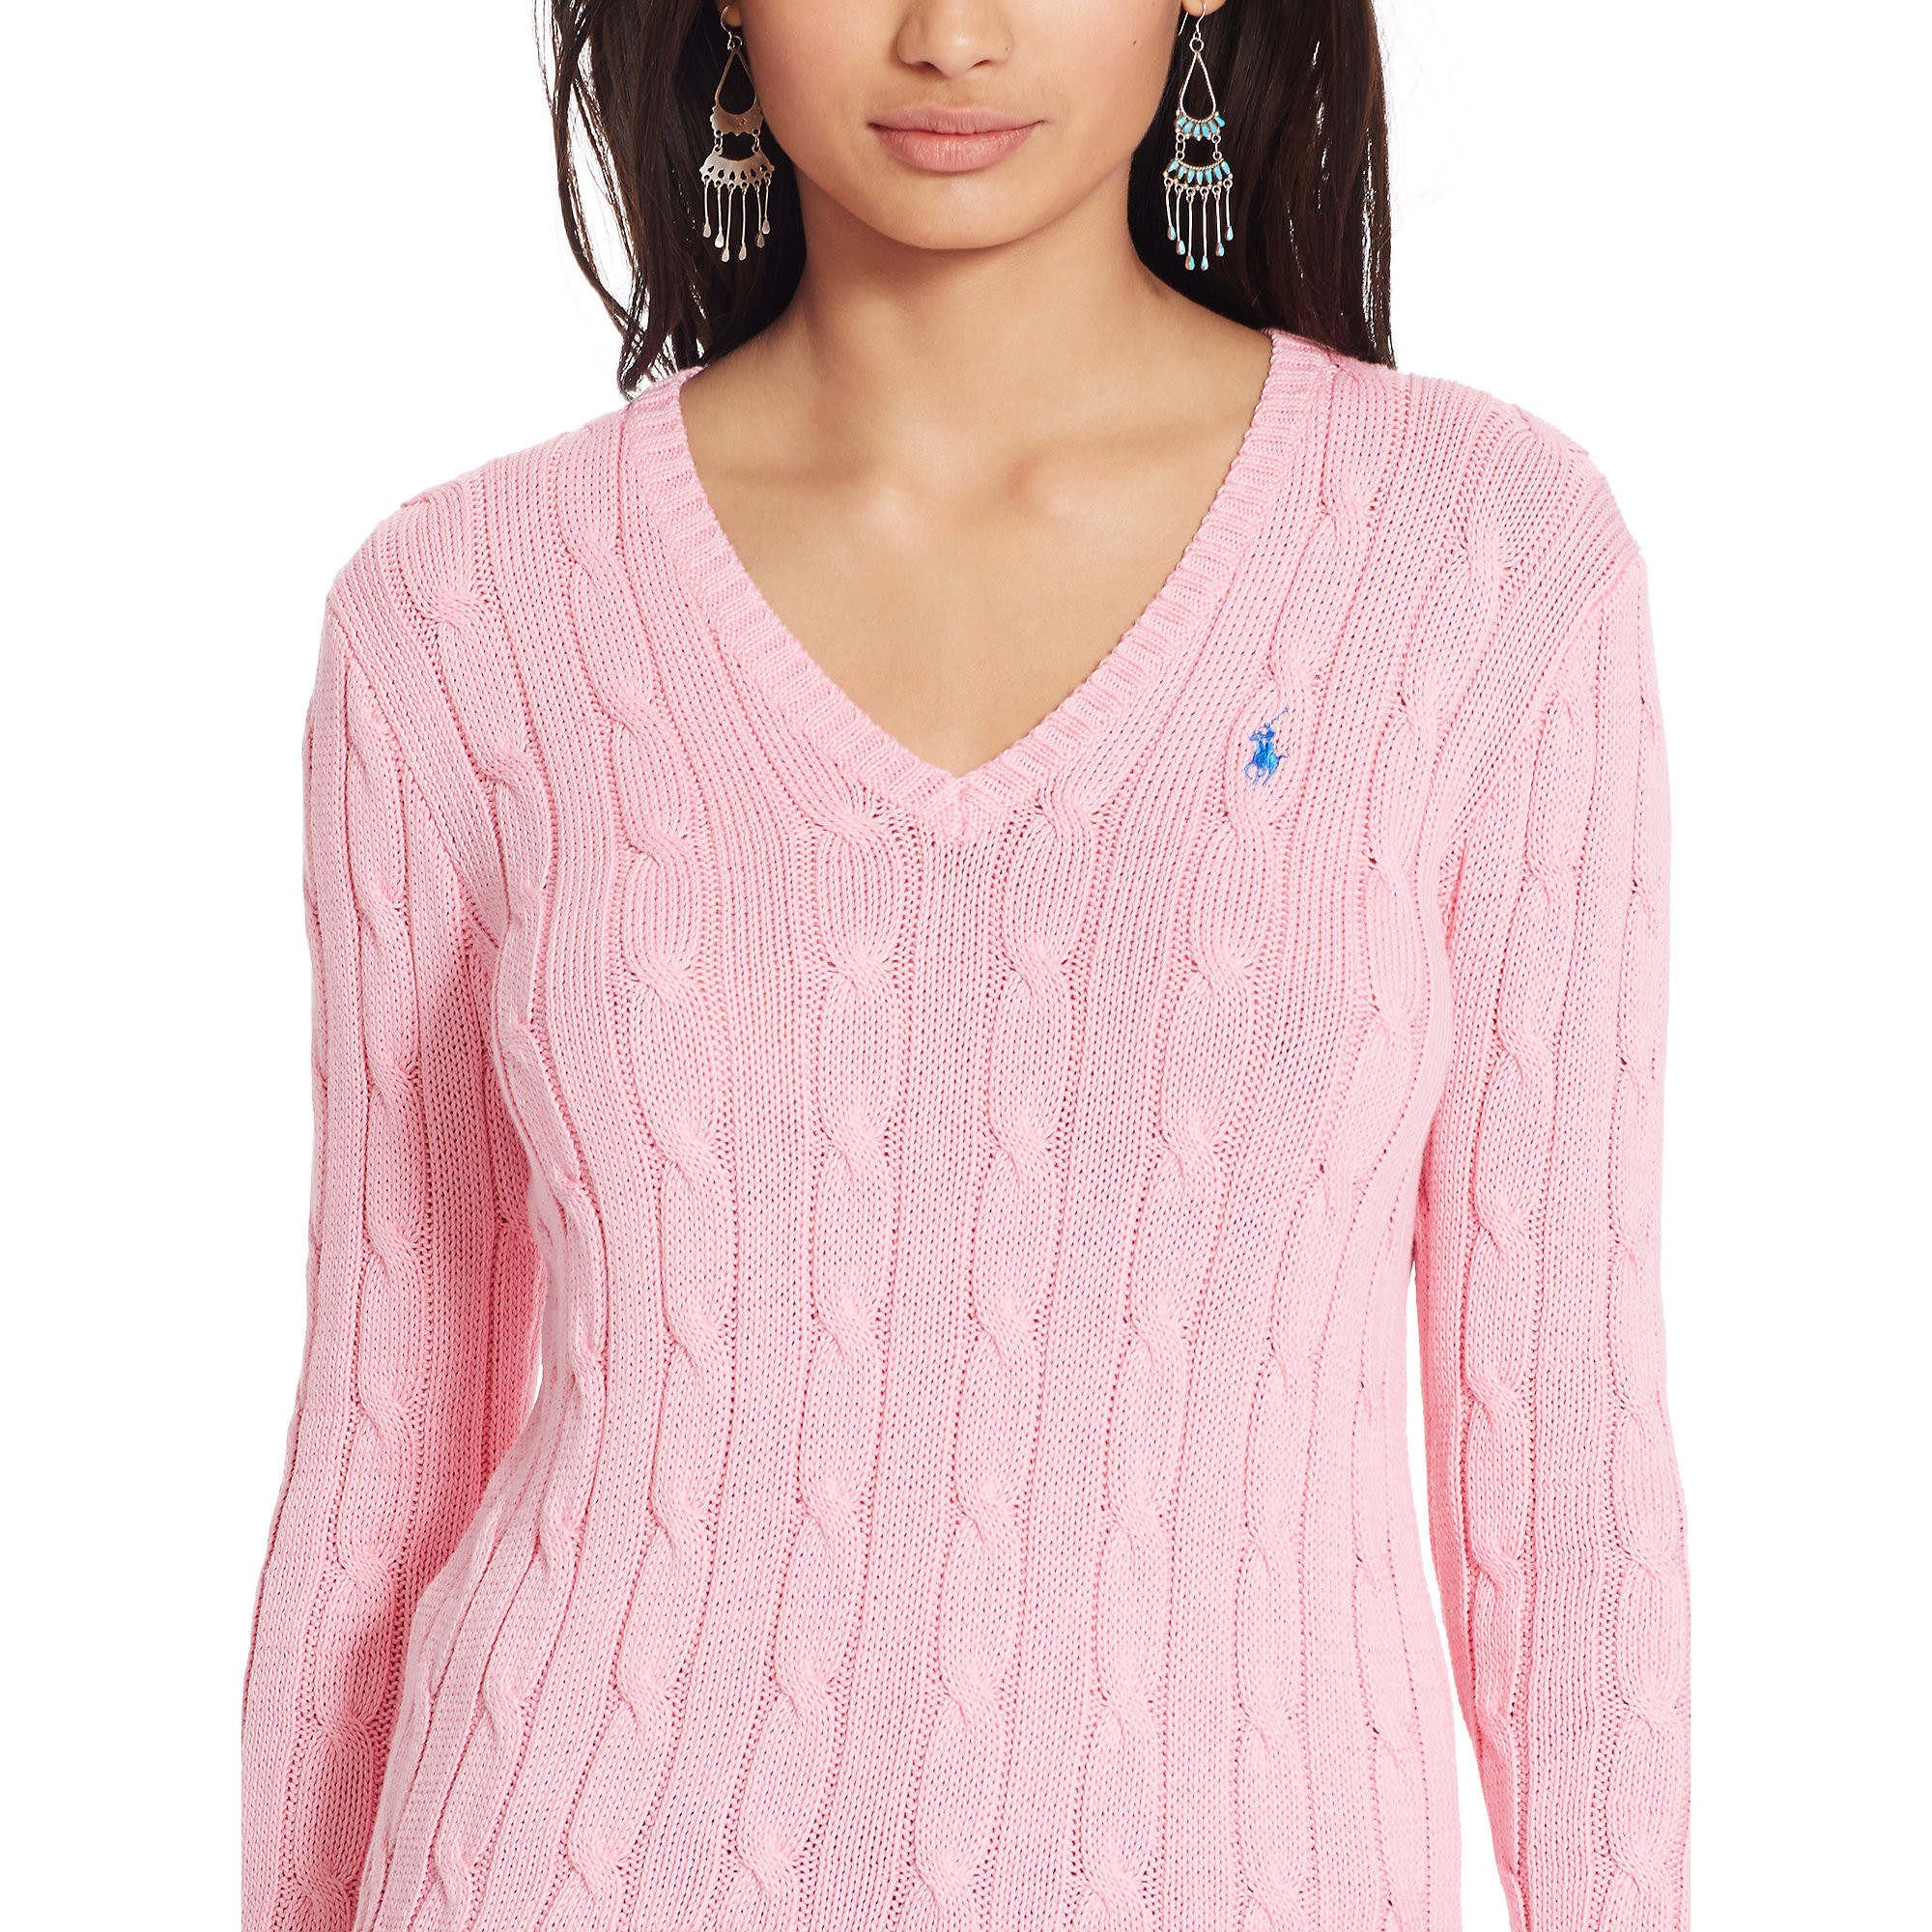 Polo ralph lauren Cable knit V neck Sweater in Pink